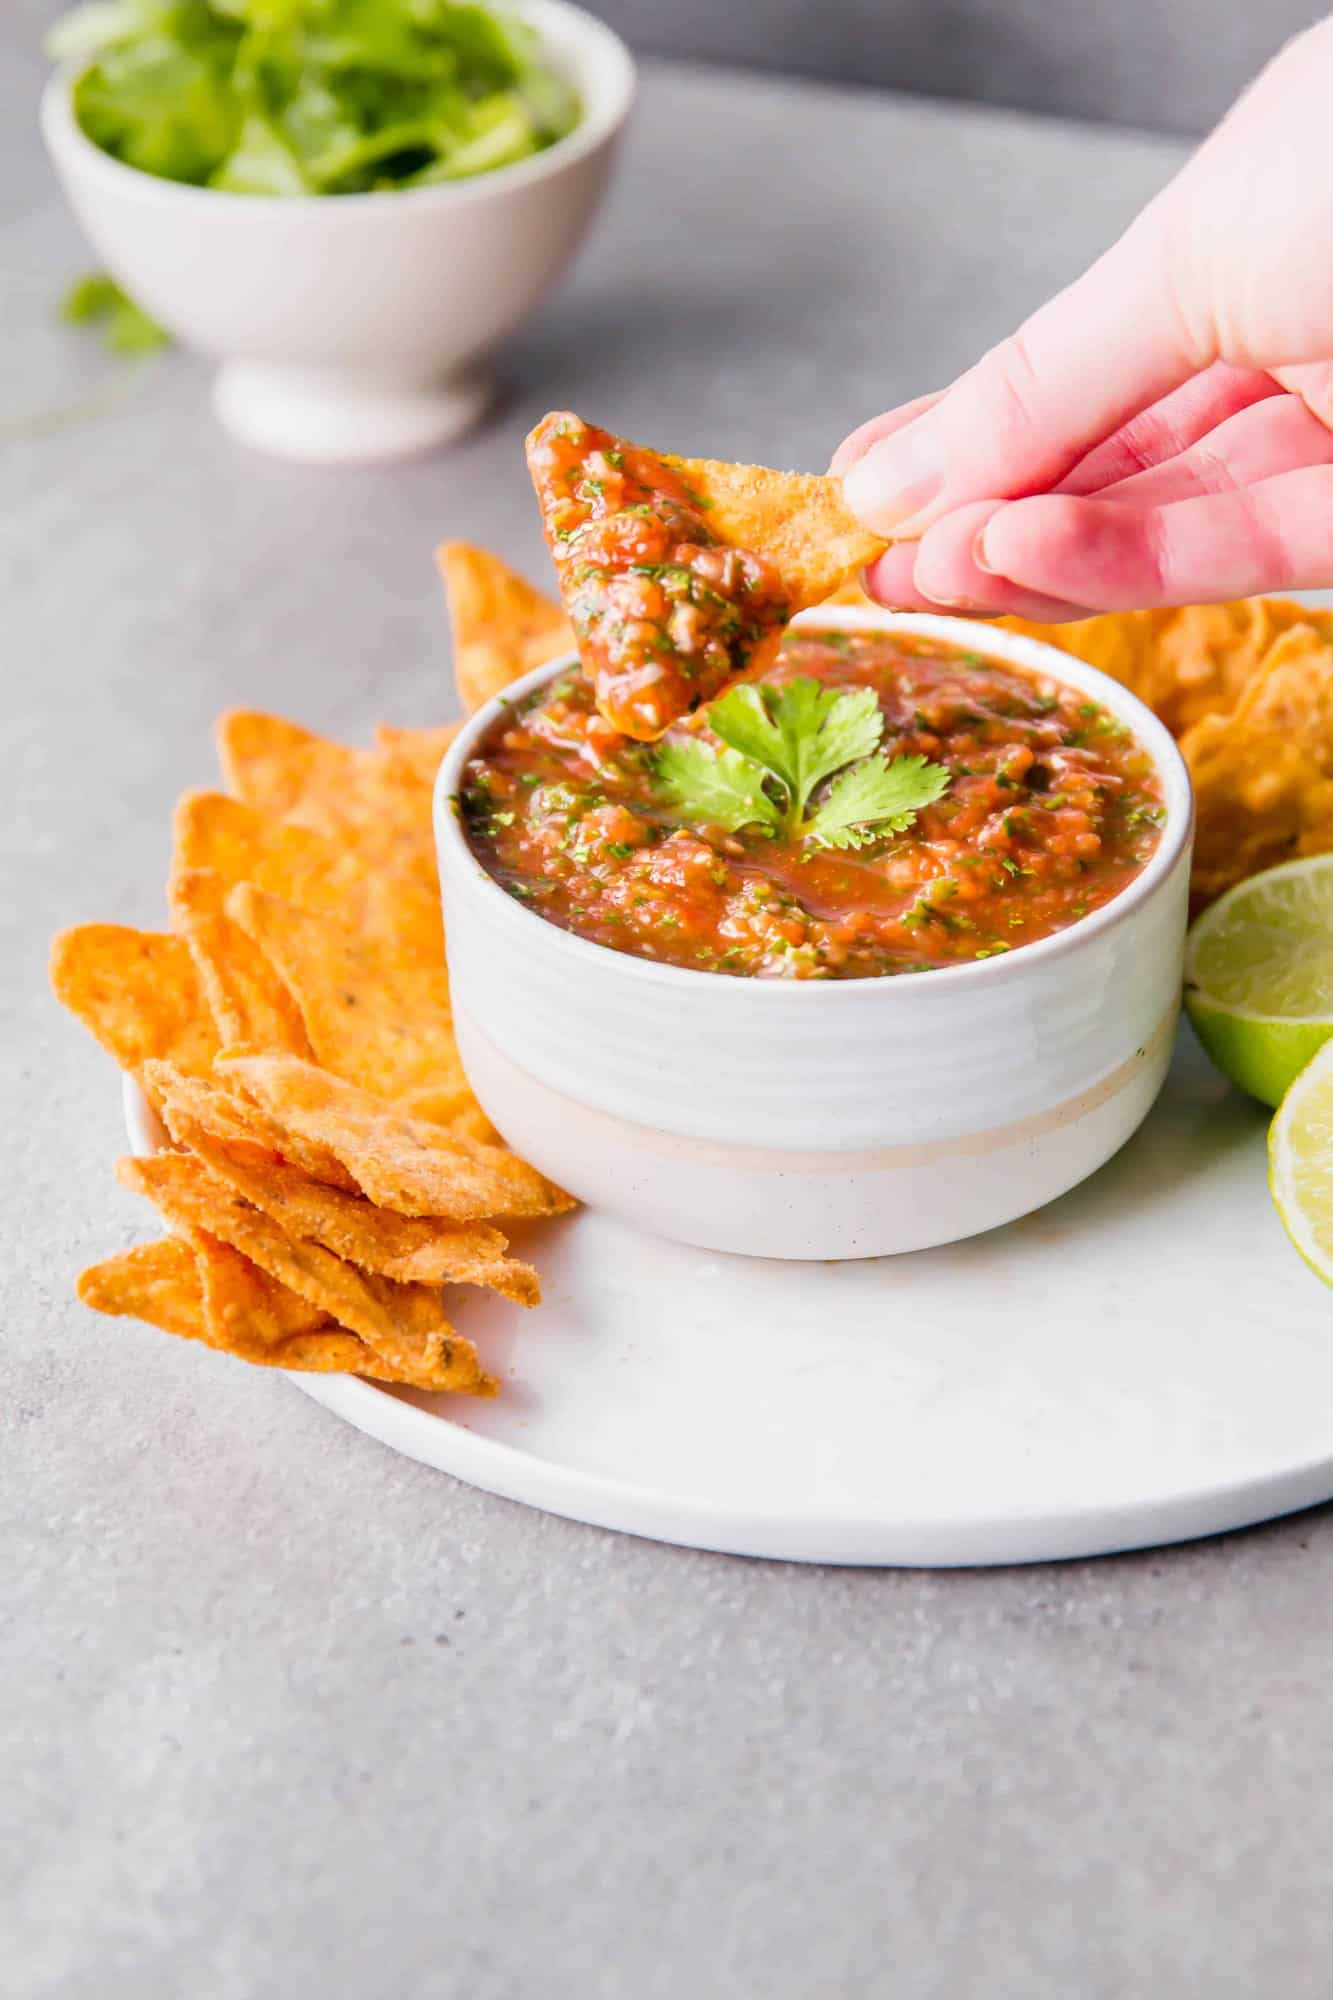 Salsa on chip in a hand over a white bowl.